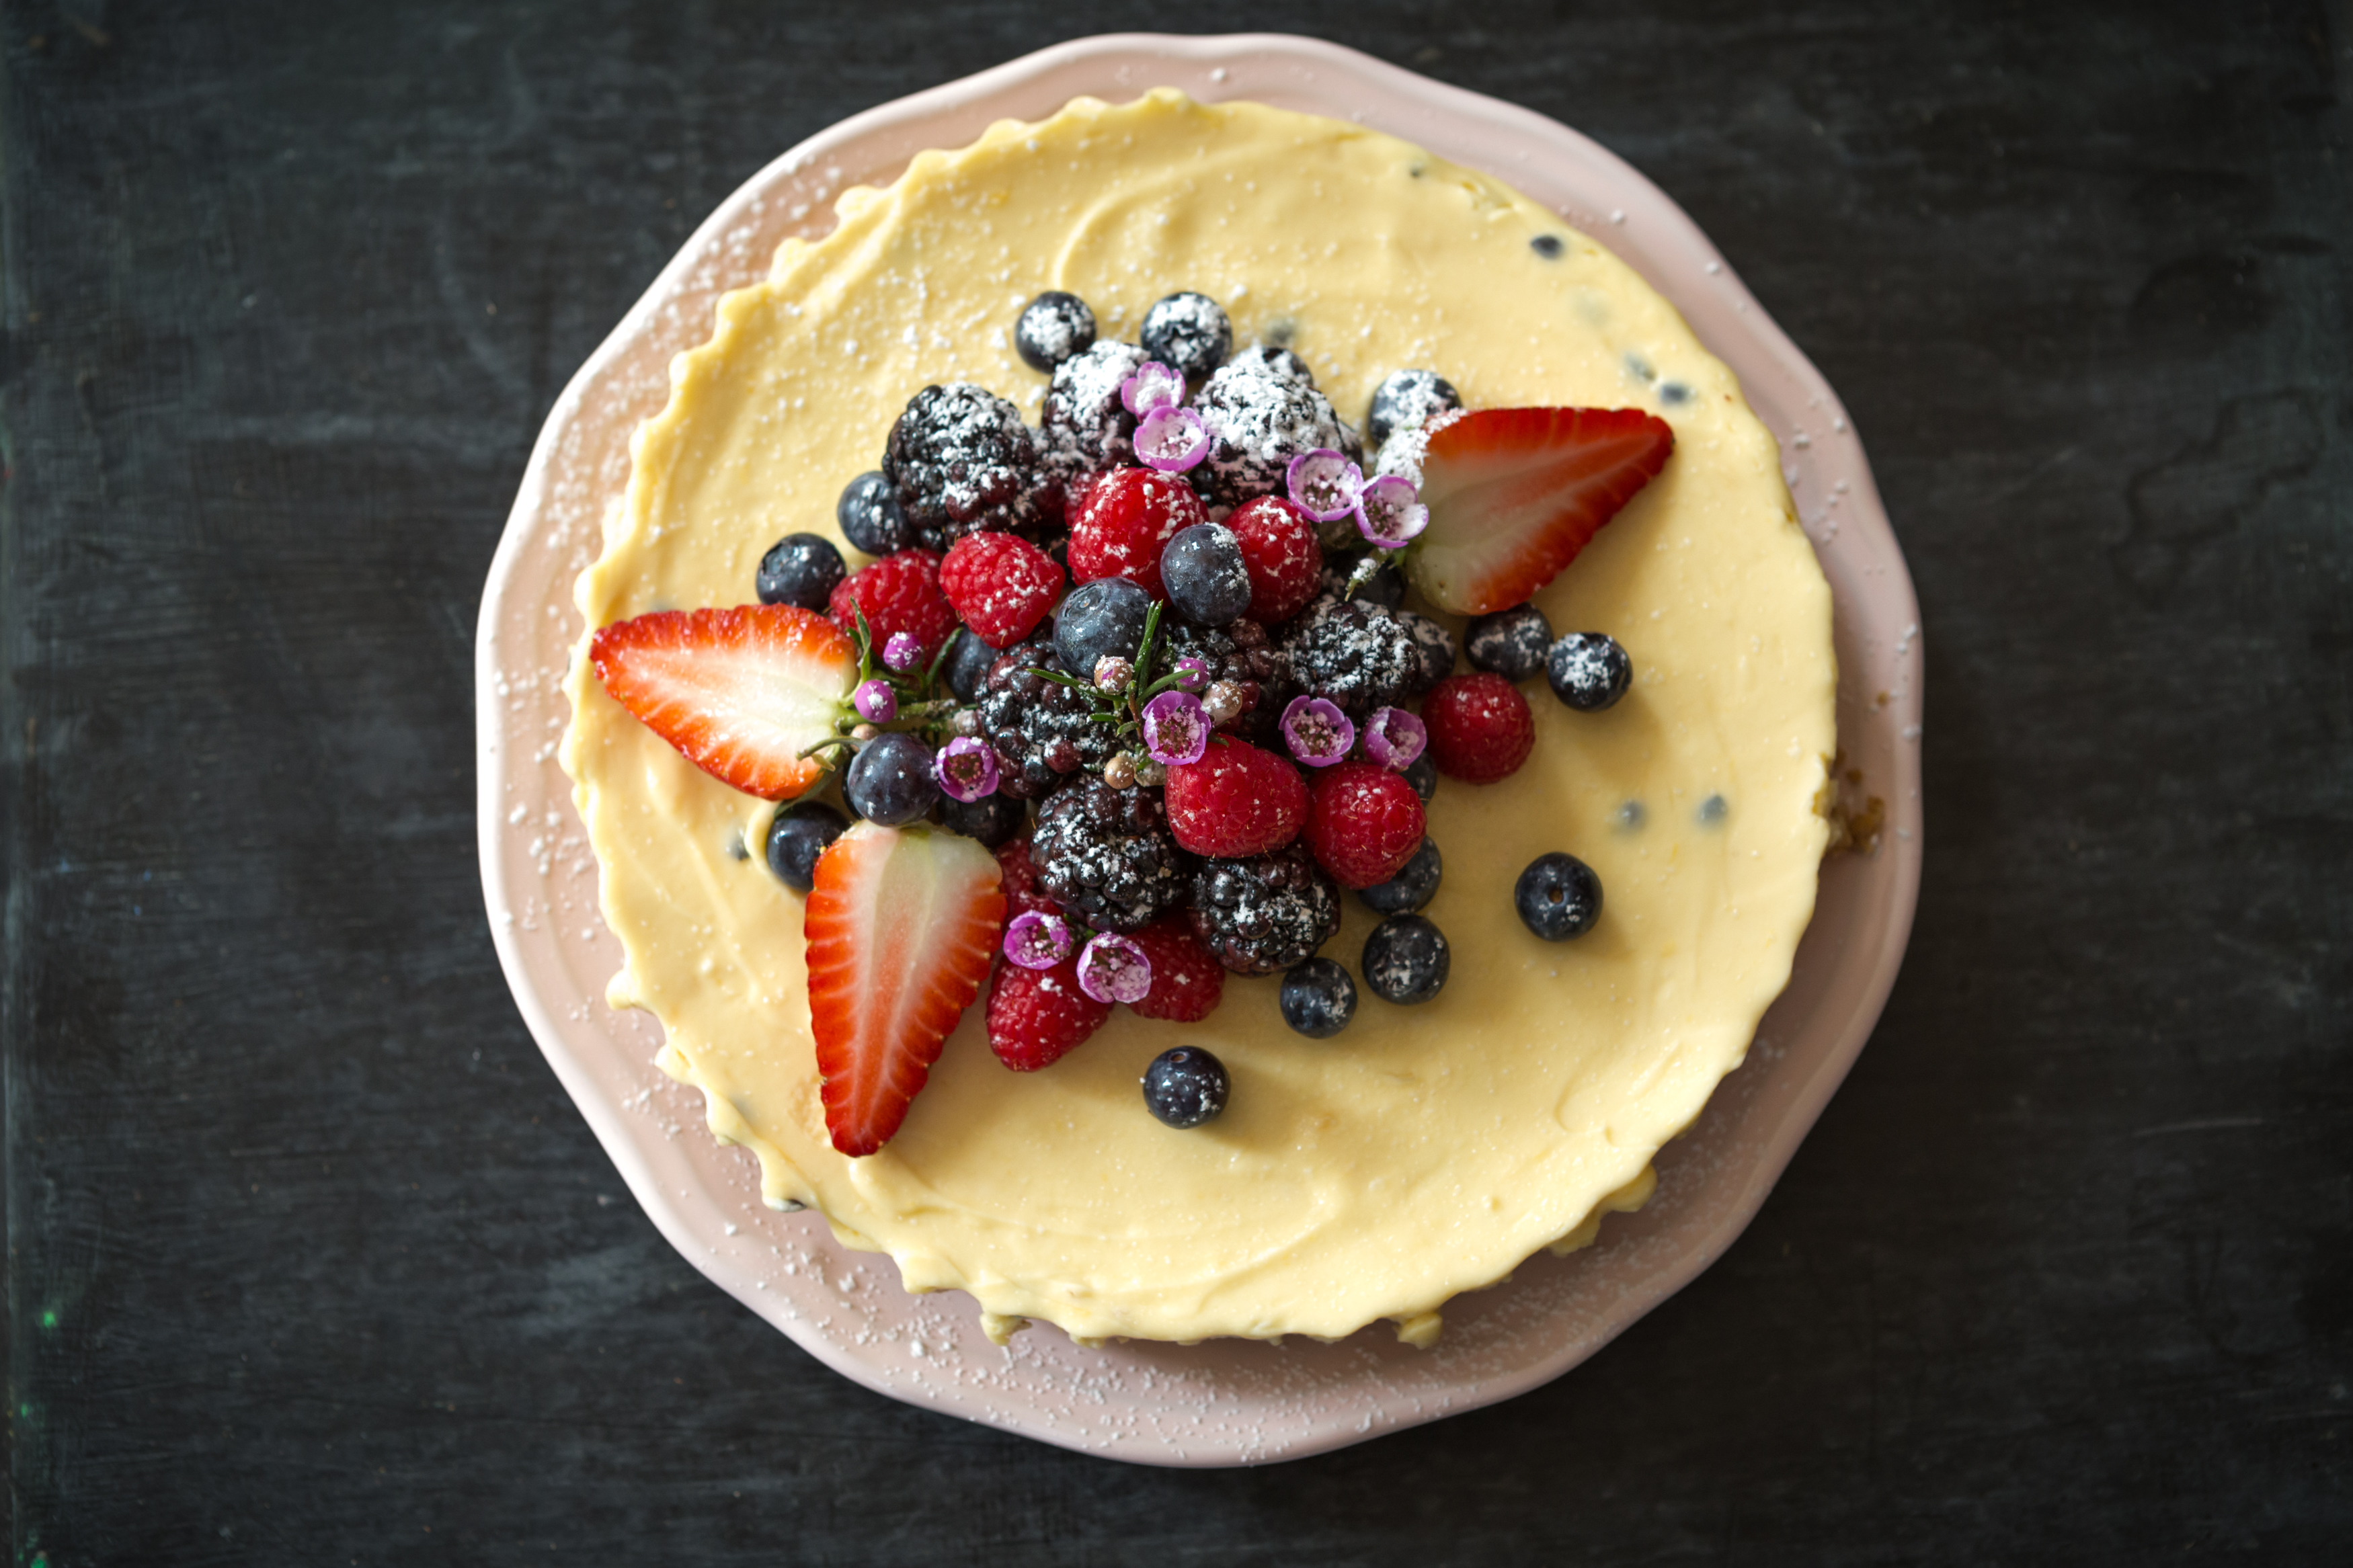 Passion Fruit Cheese Cake with Summer Berries Miss Tortology E17 Artisan Cakes